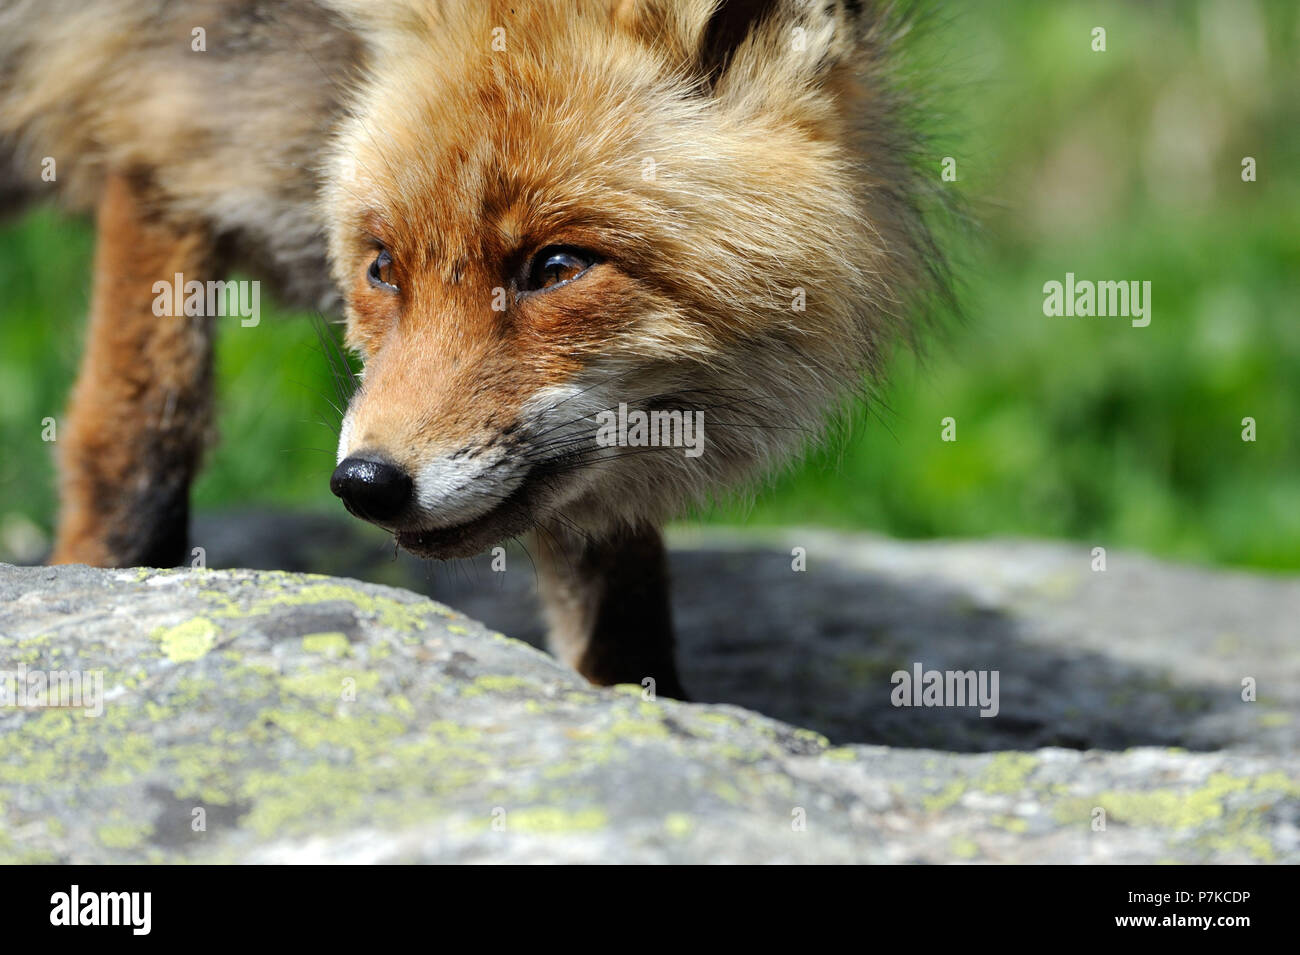 Fox, red fox, mountain fox - Stock Image